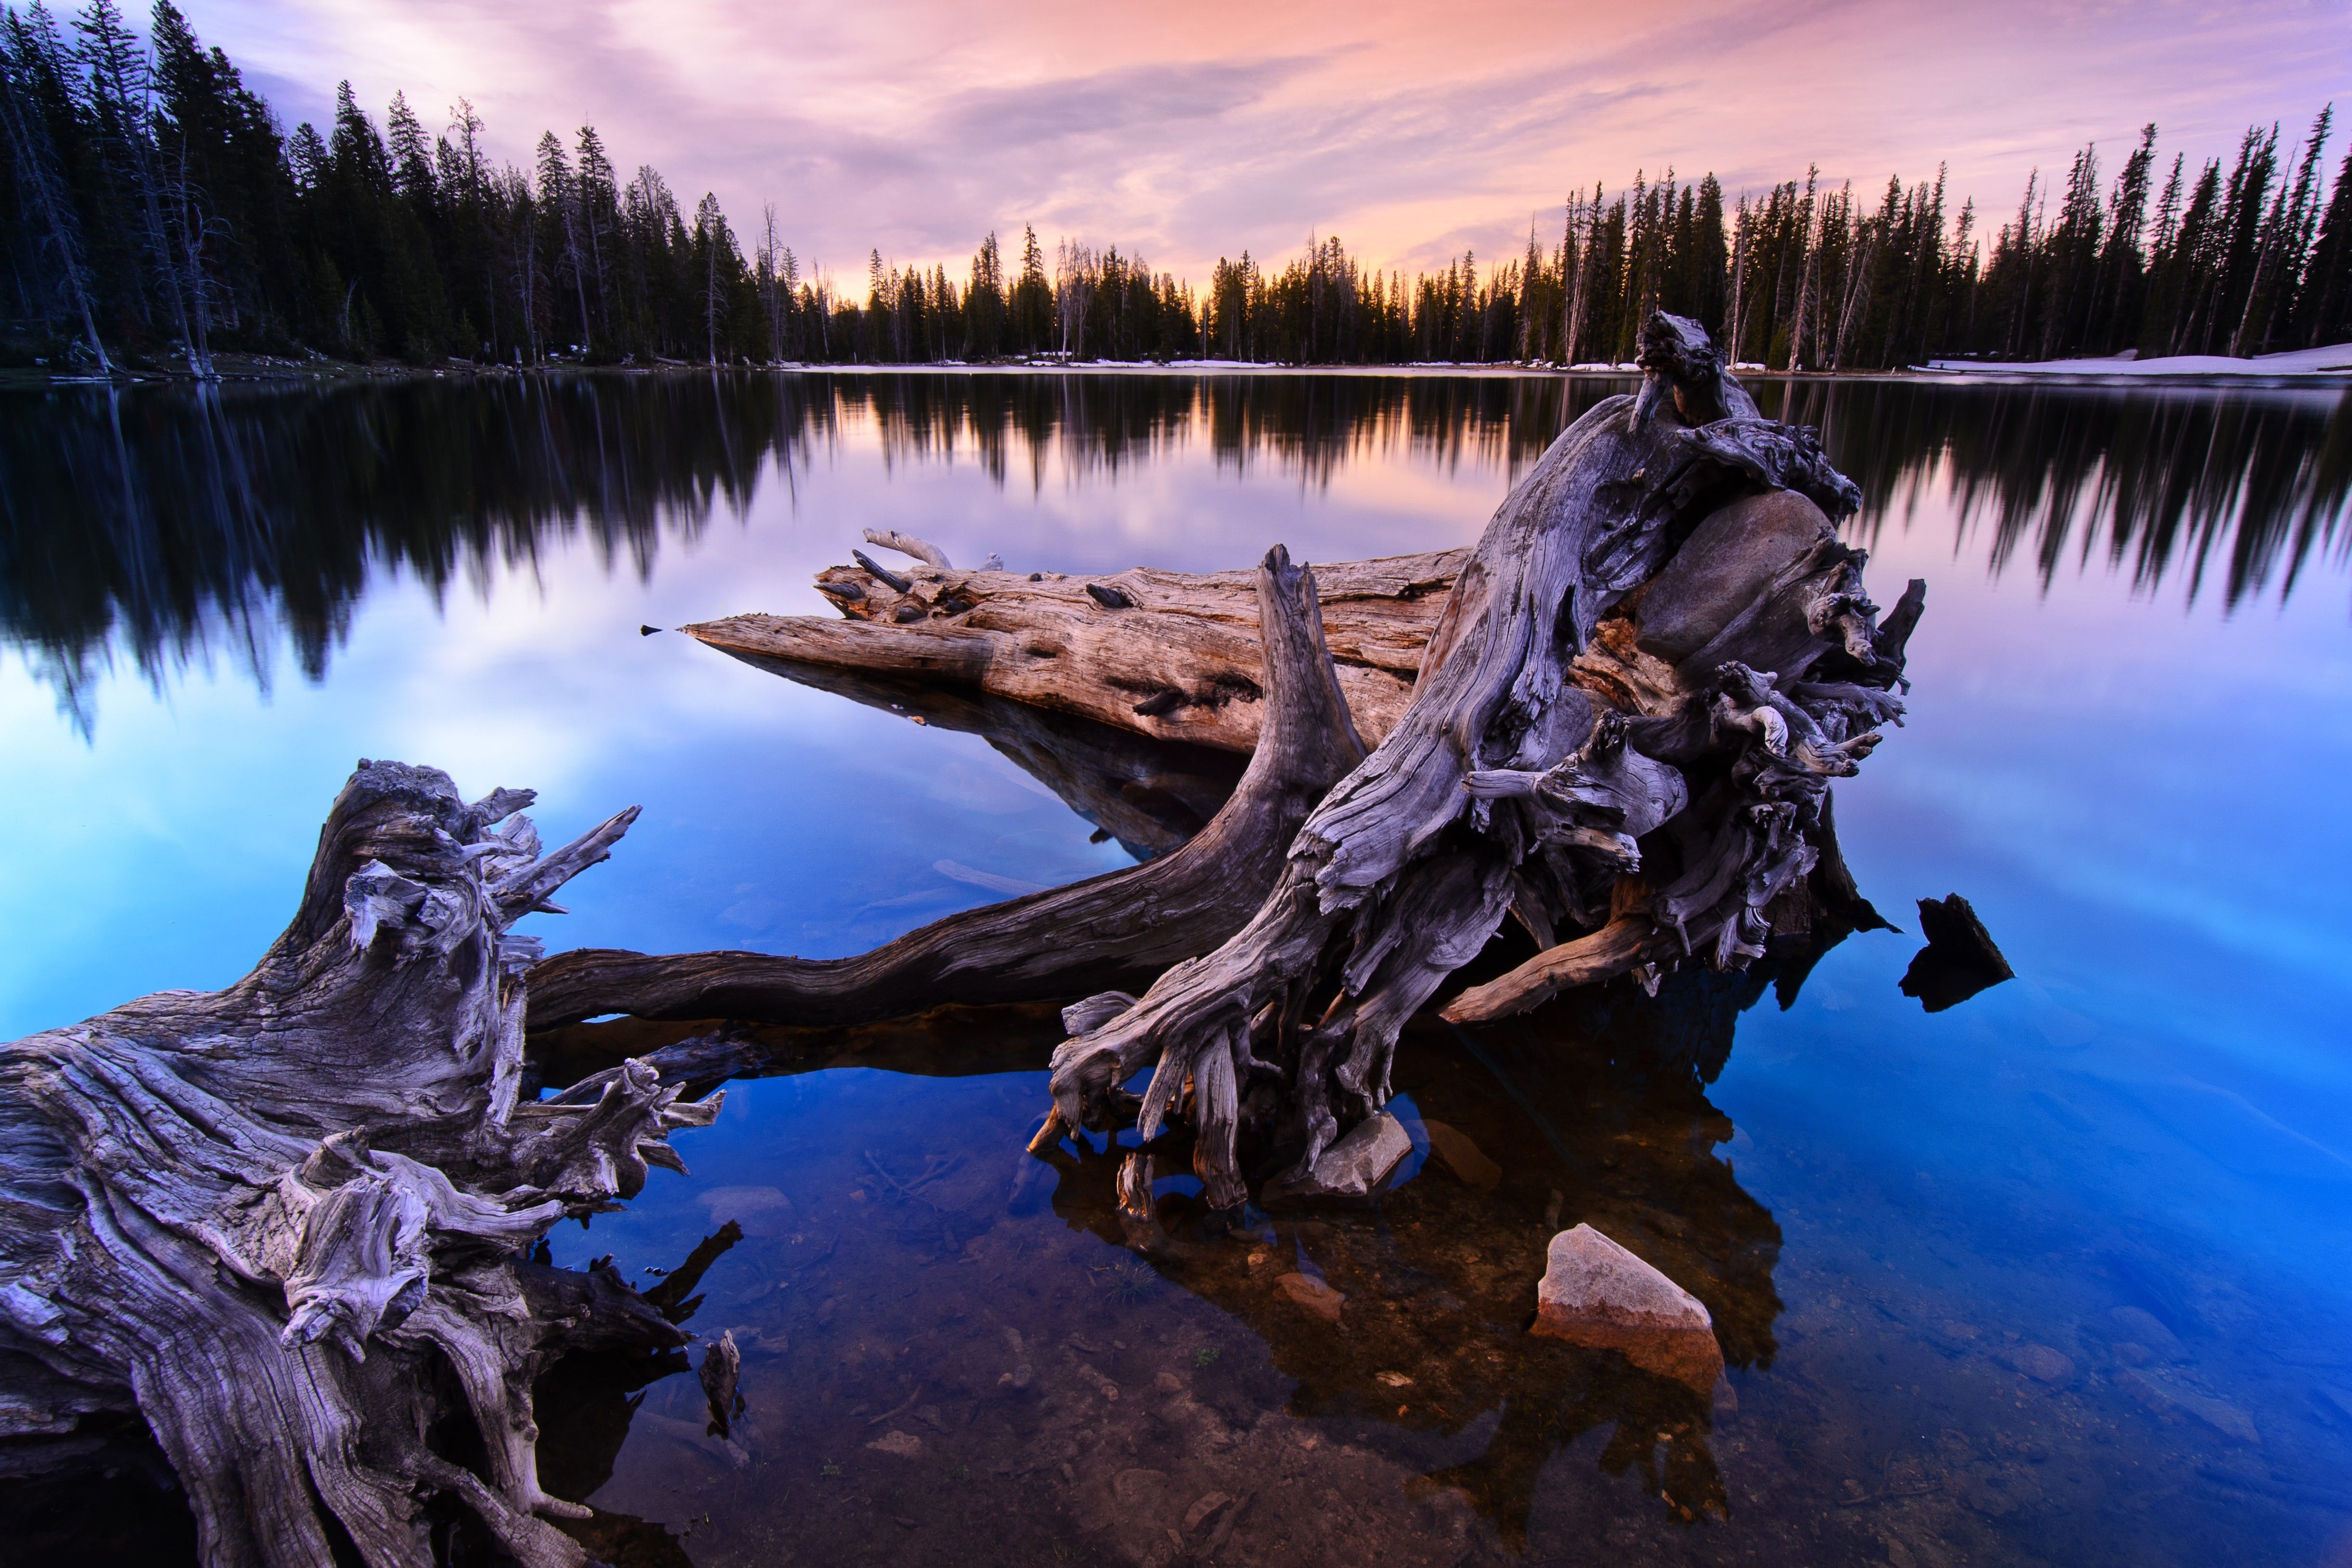 An image of large driftwood sitting in Crystal Lake.